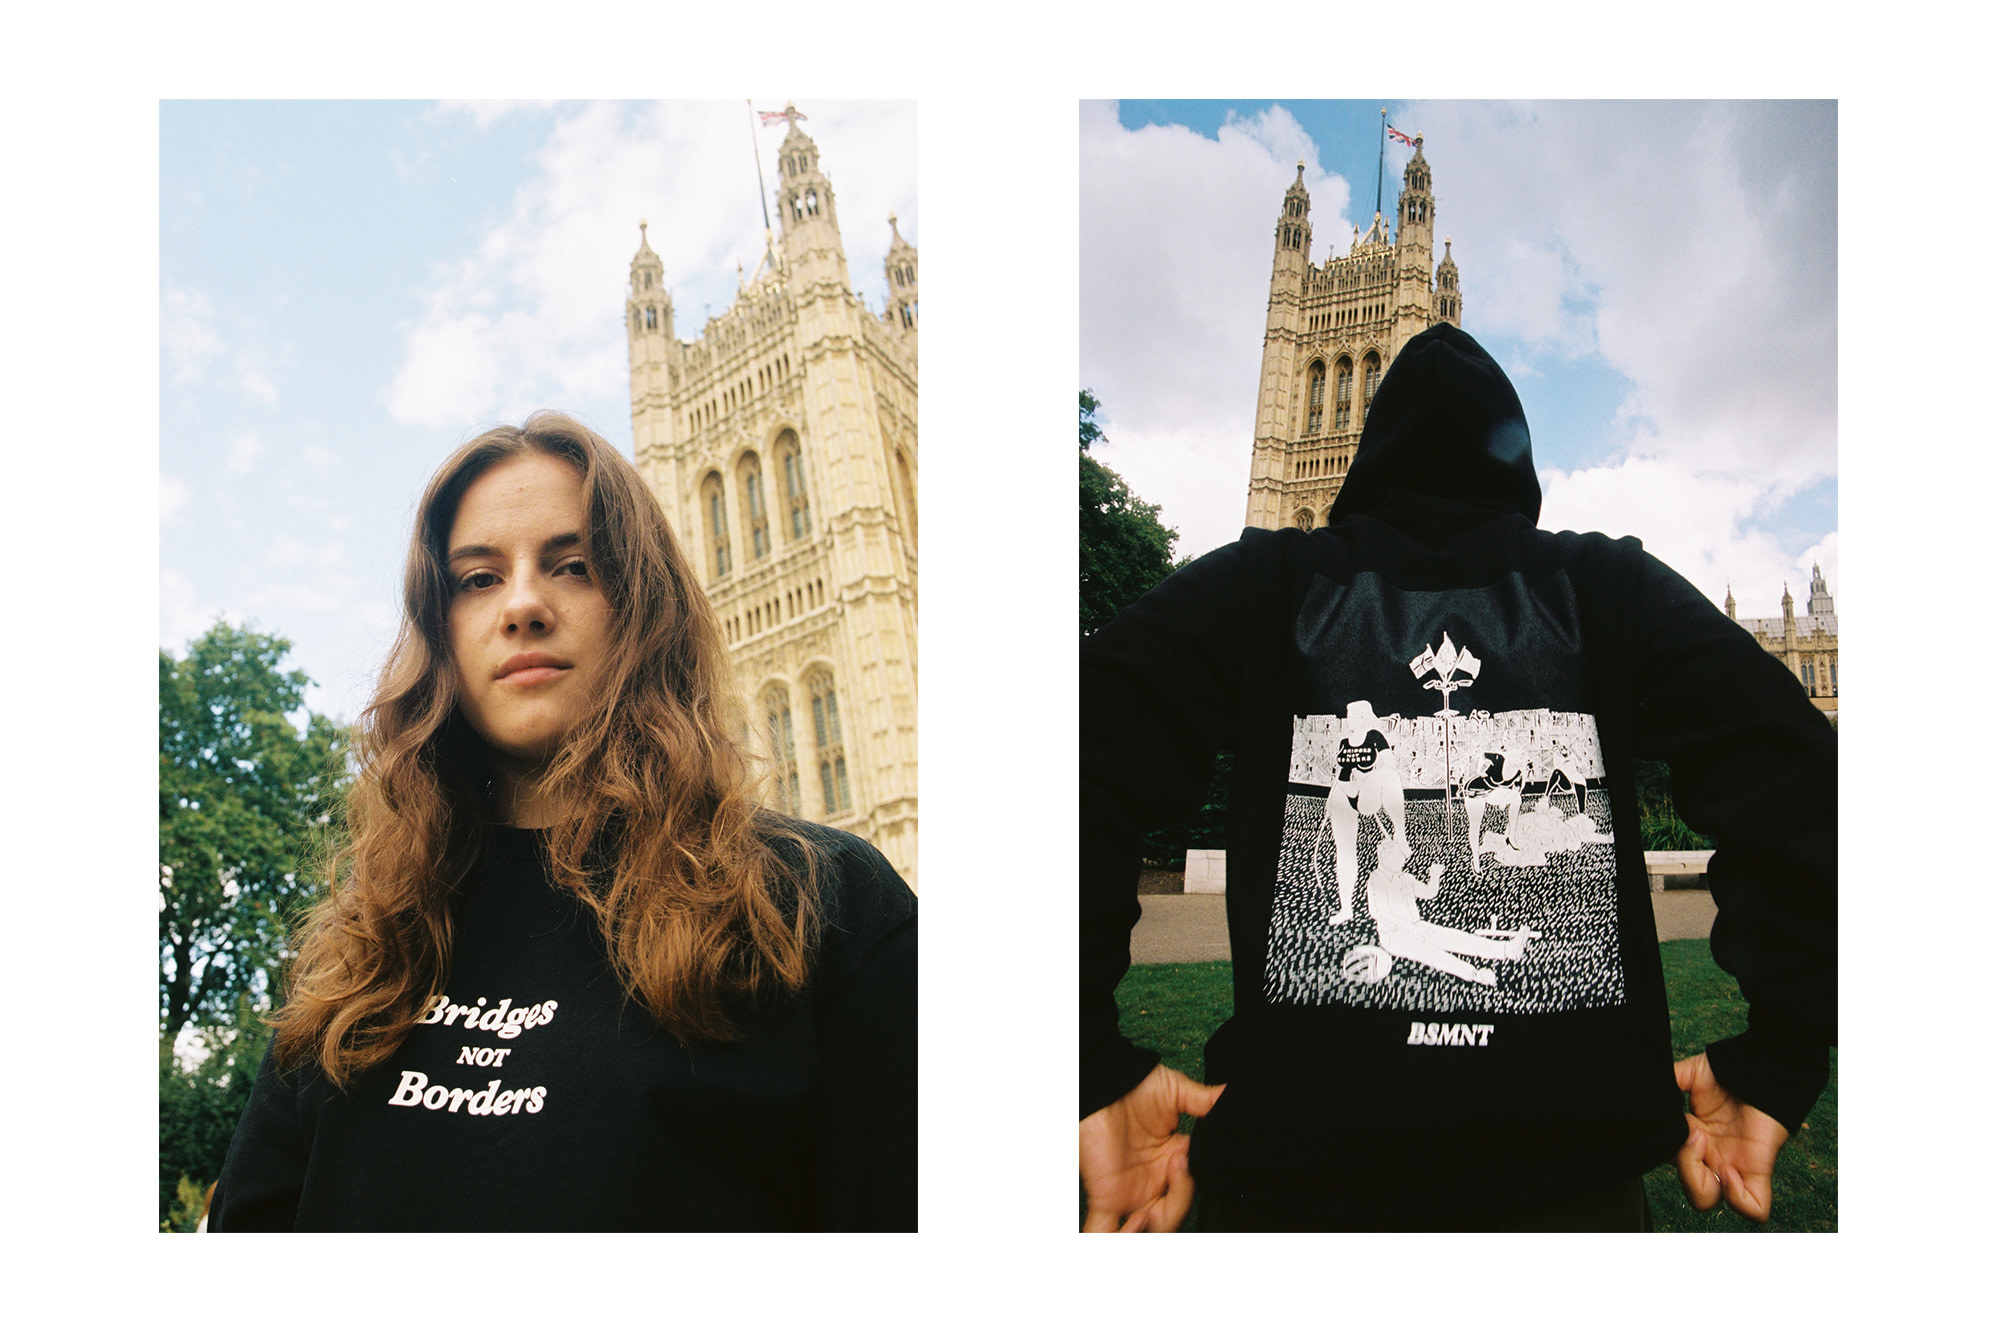 The Basement Champion Unified Communities with the 'Bridges Not Borders' Capsule Collection